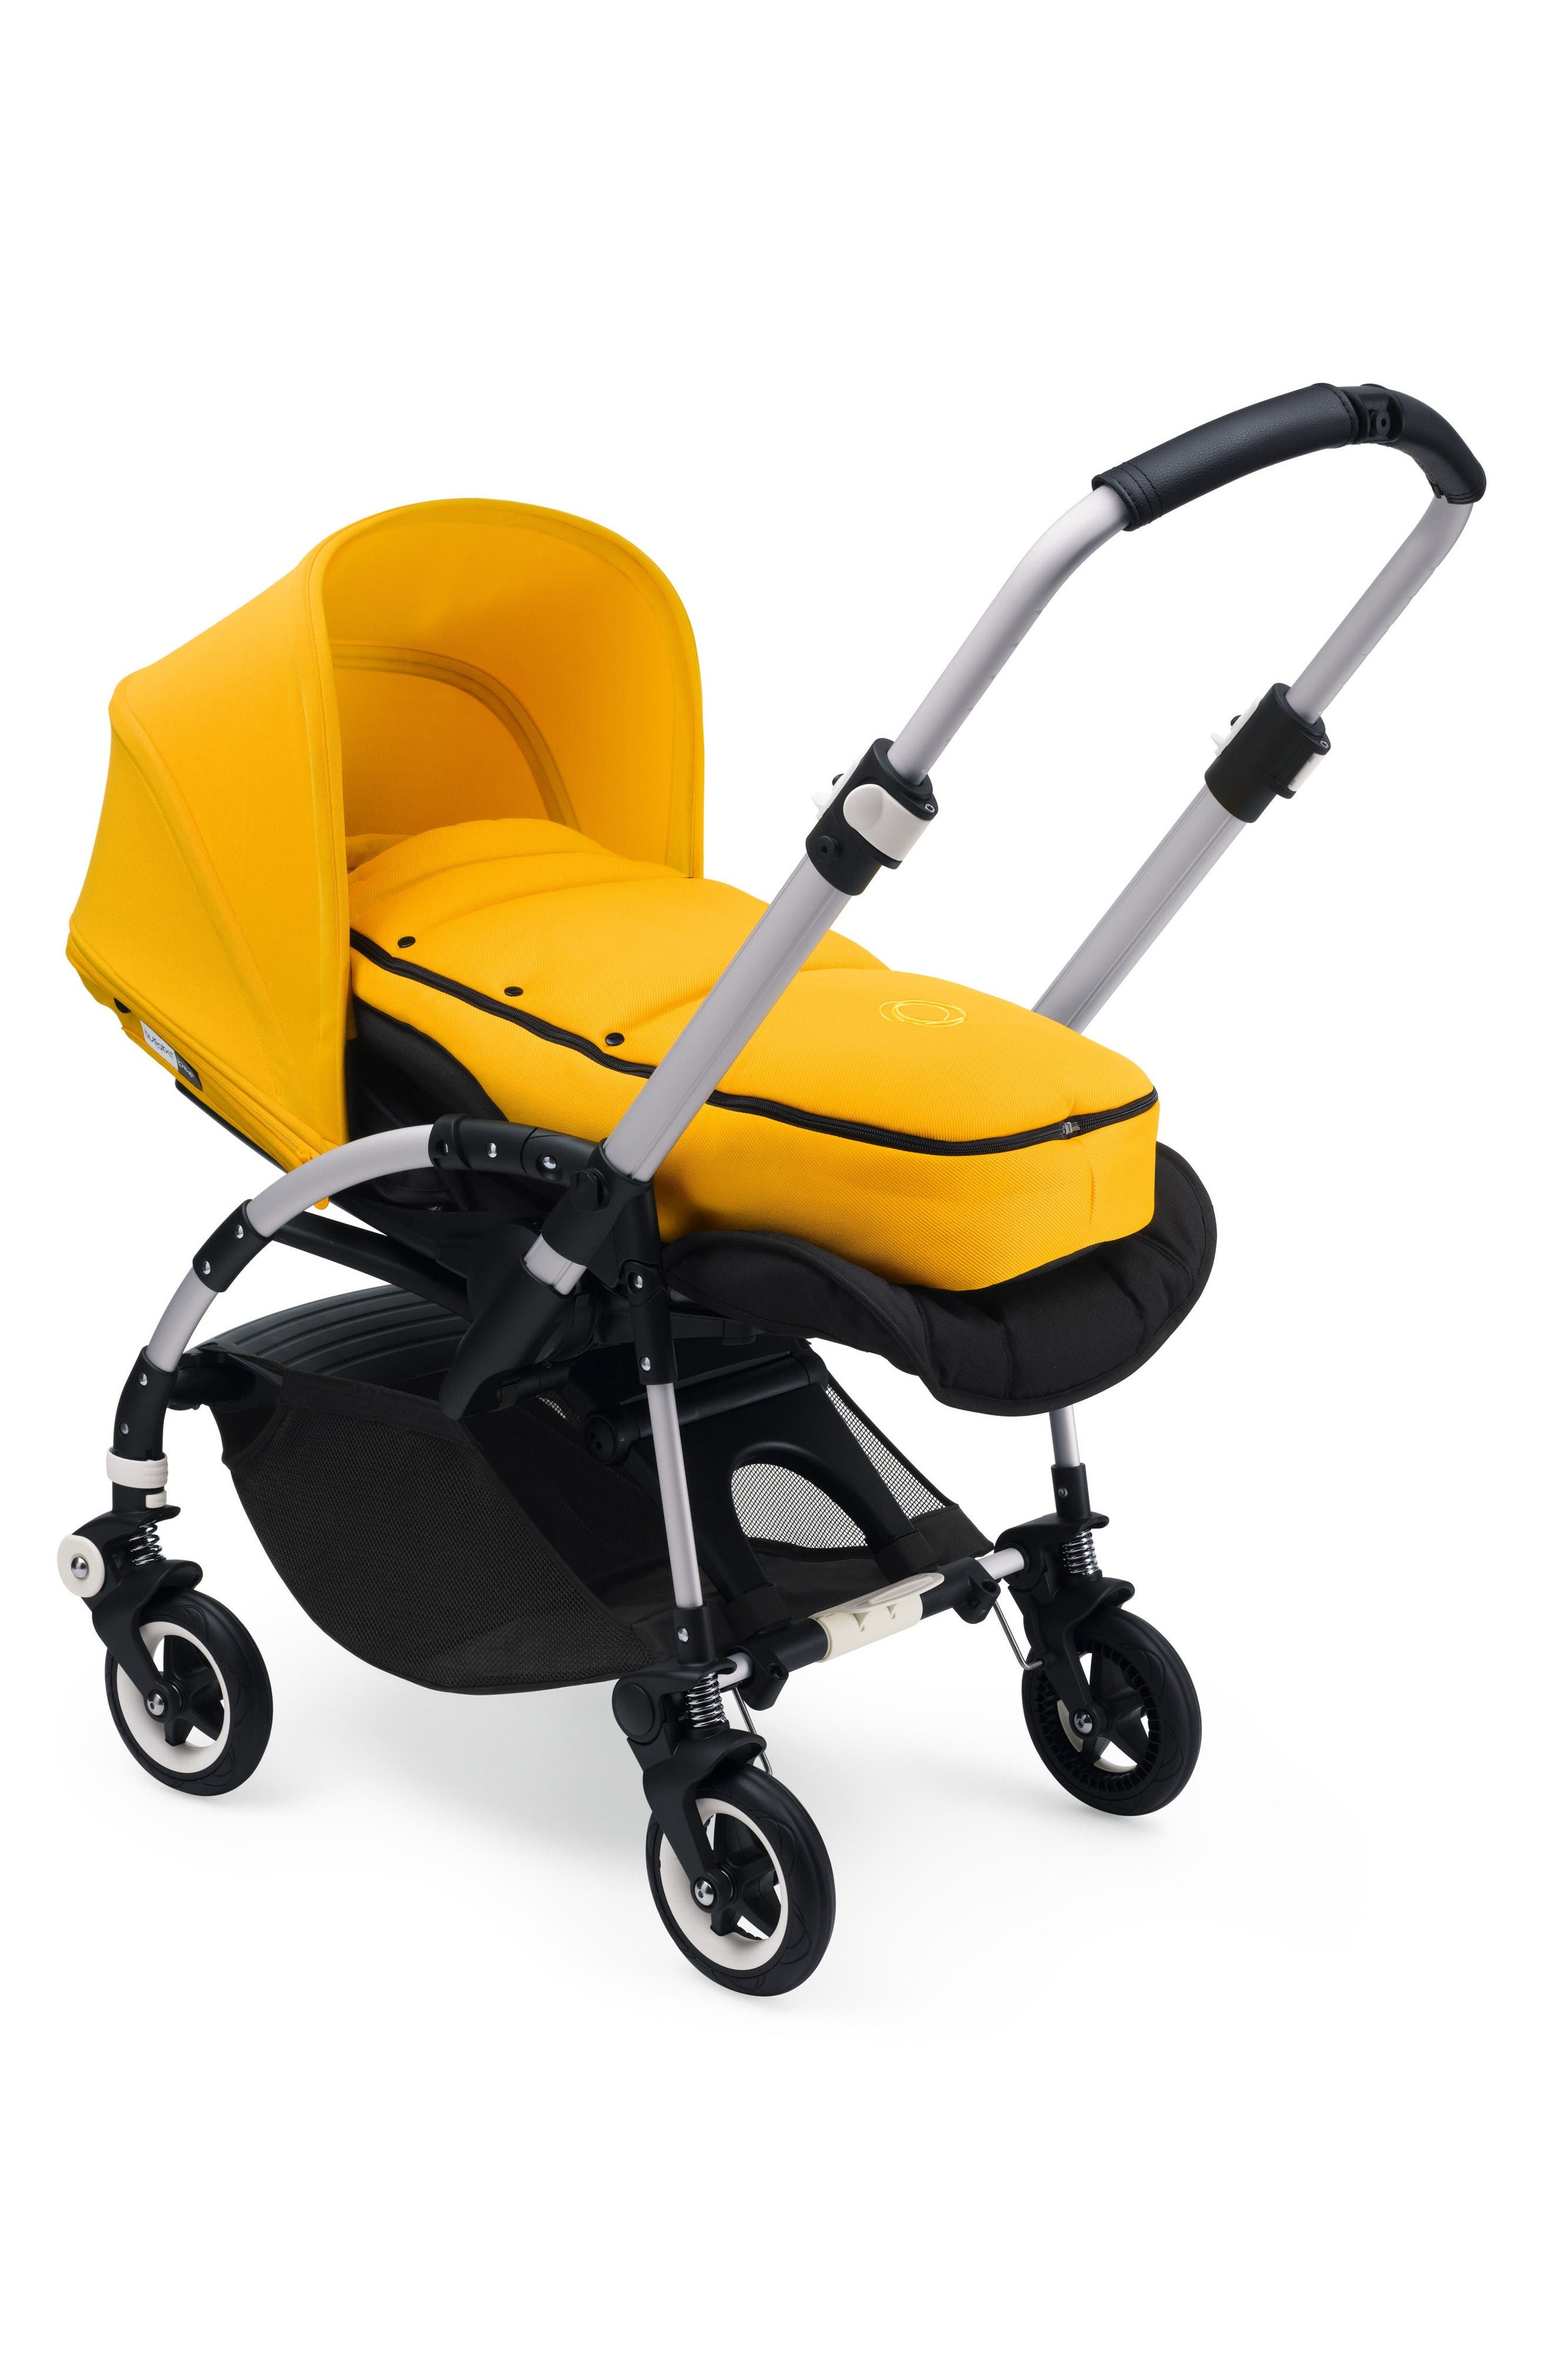 Bugaboo Bee - Baby Cocoon Light Stroller Lining